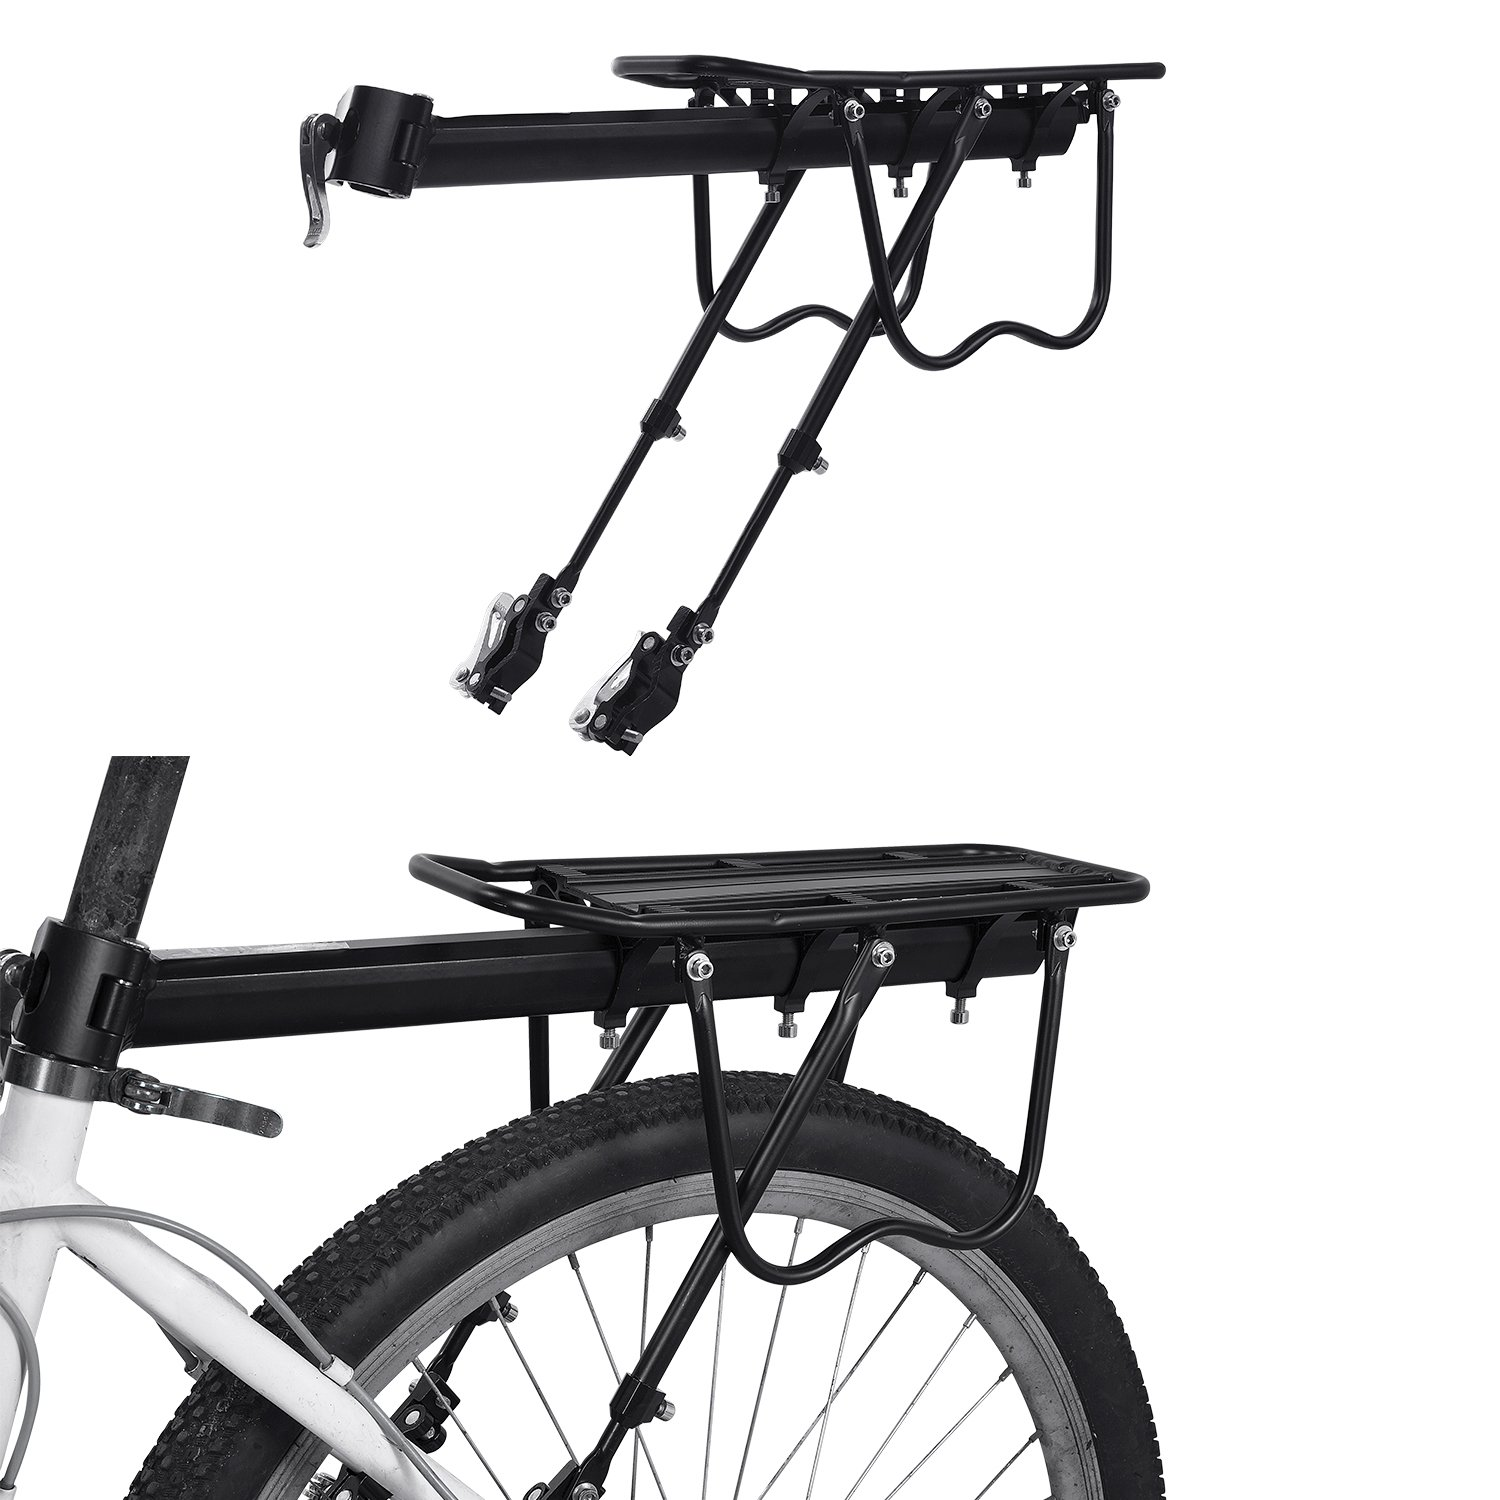 Bicicleta portaequipajes, weyty Ajustable Carrier Trasera para ...